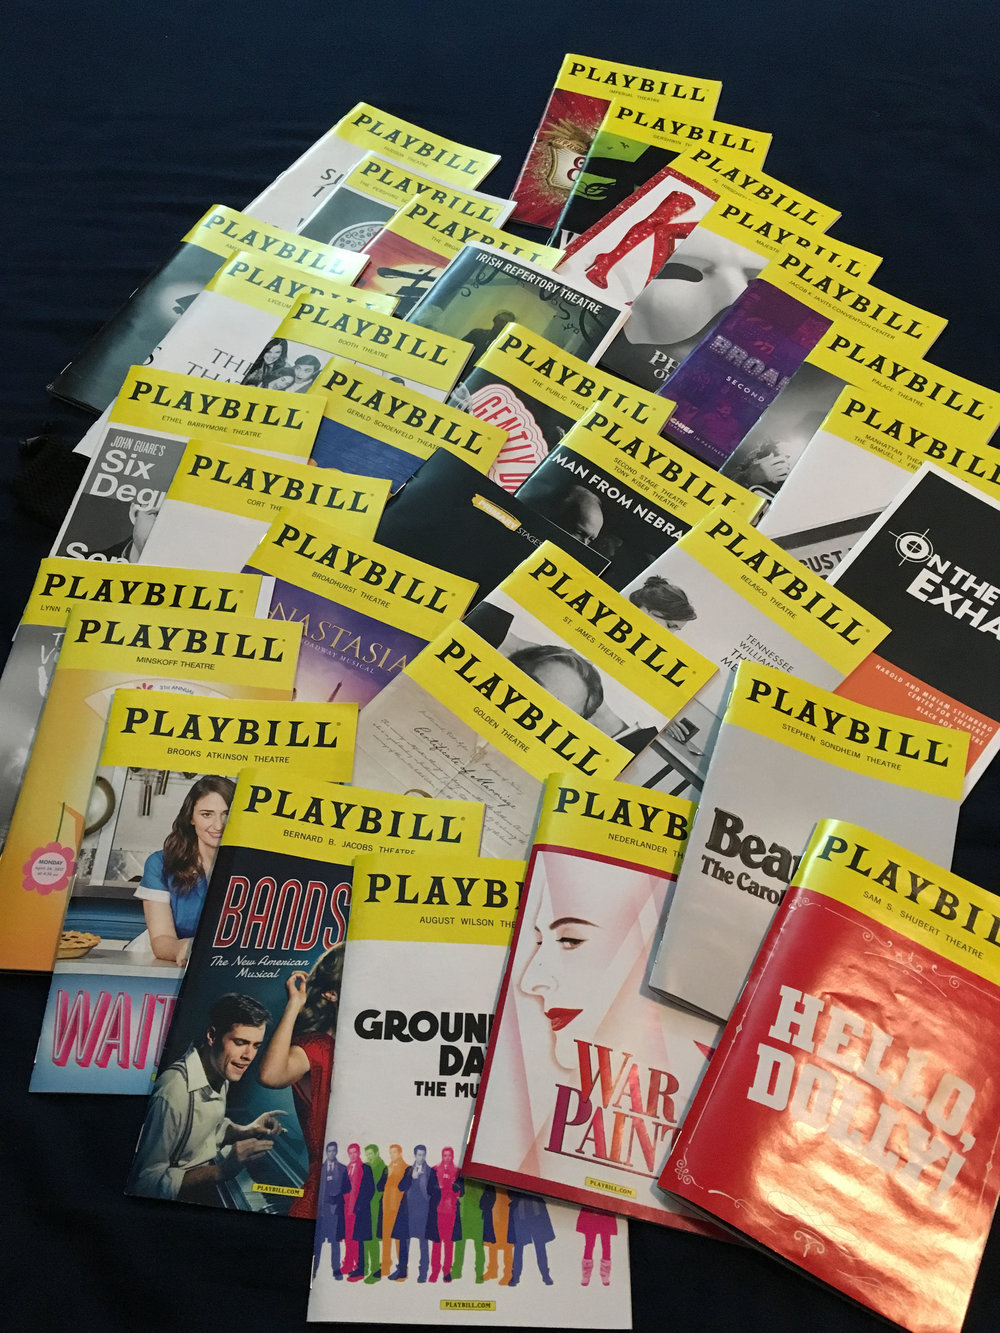 Chad's Playbills from the Spring 2017 Broadway season